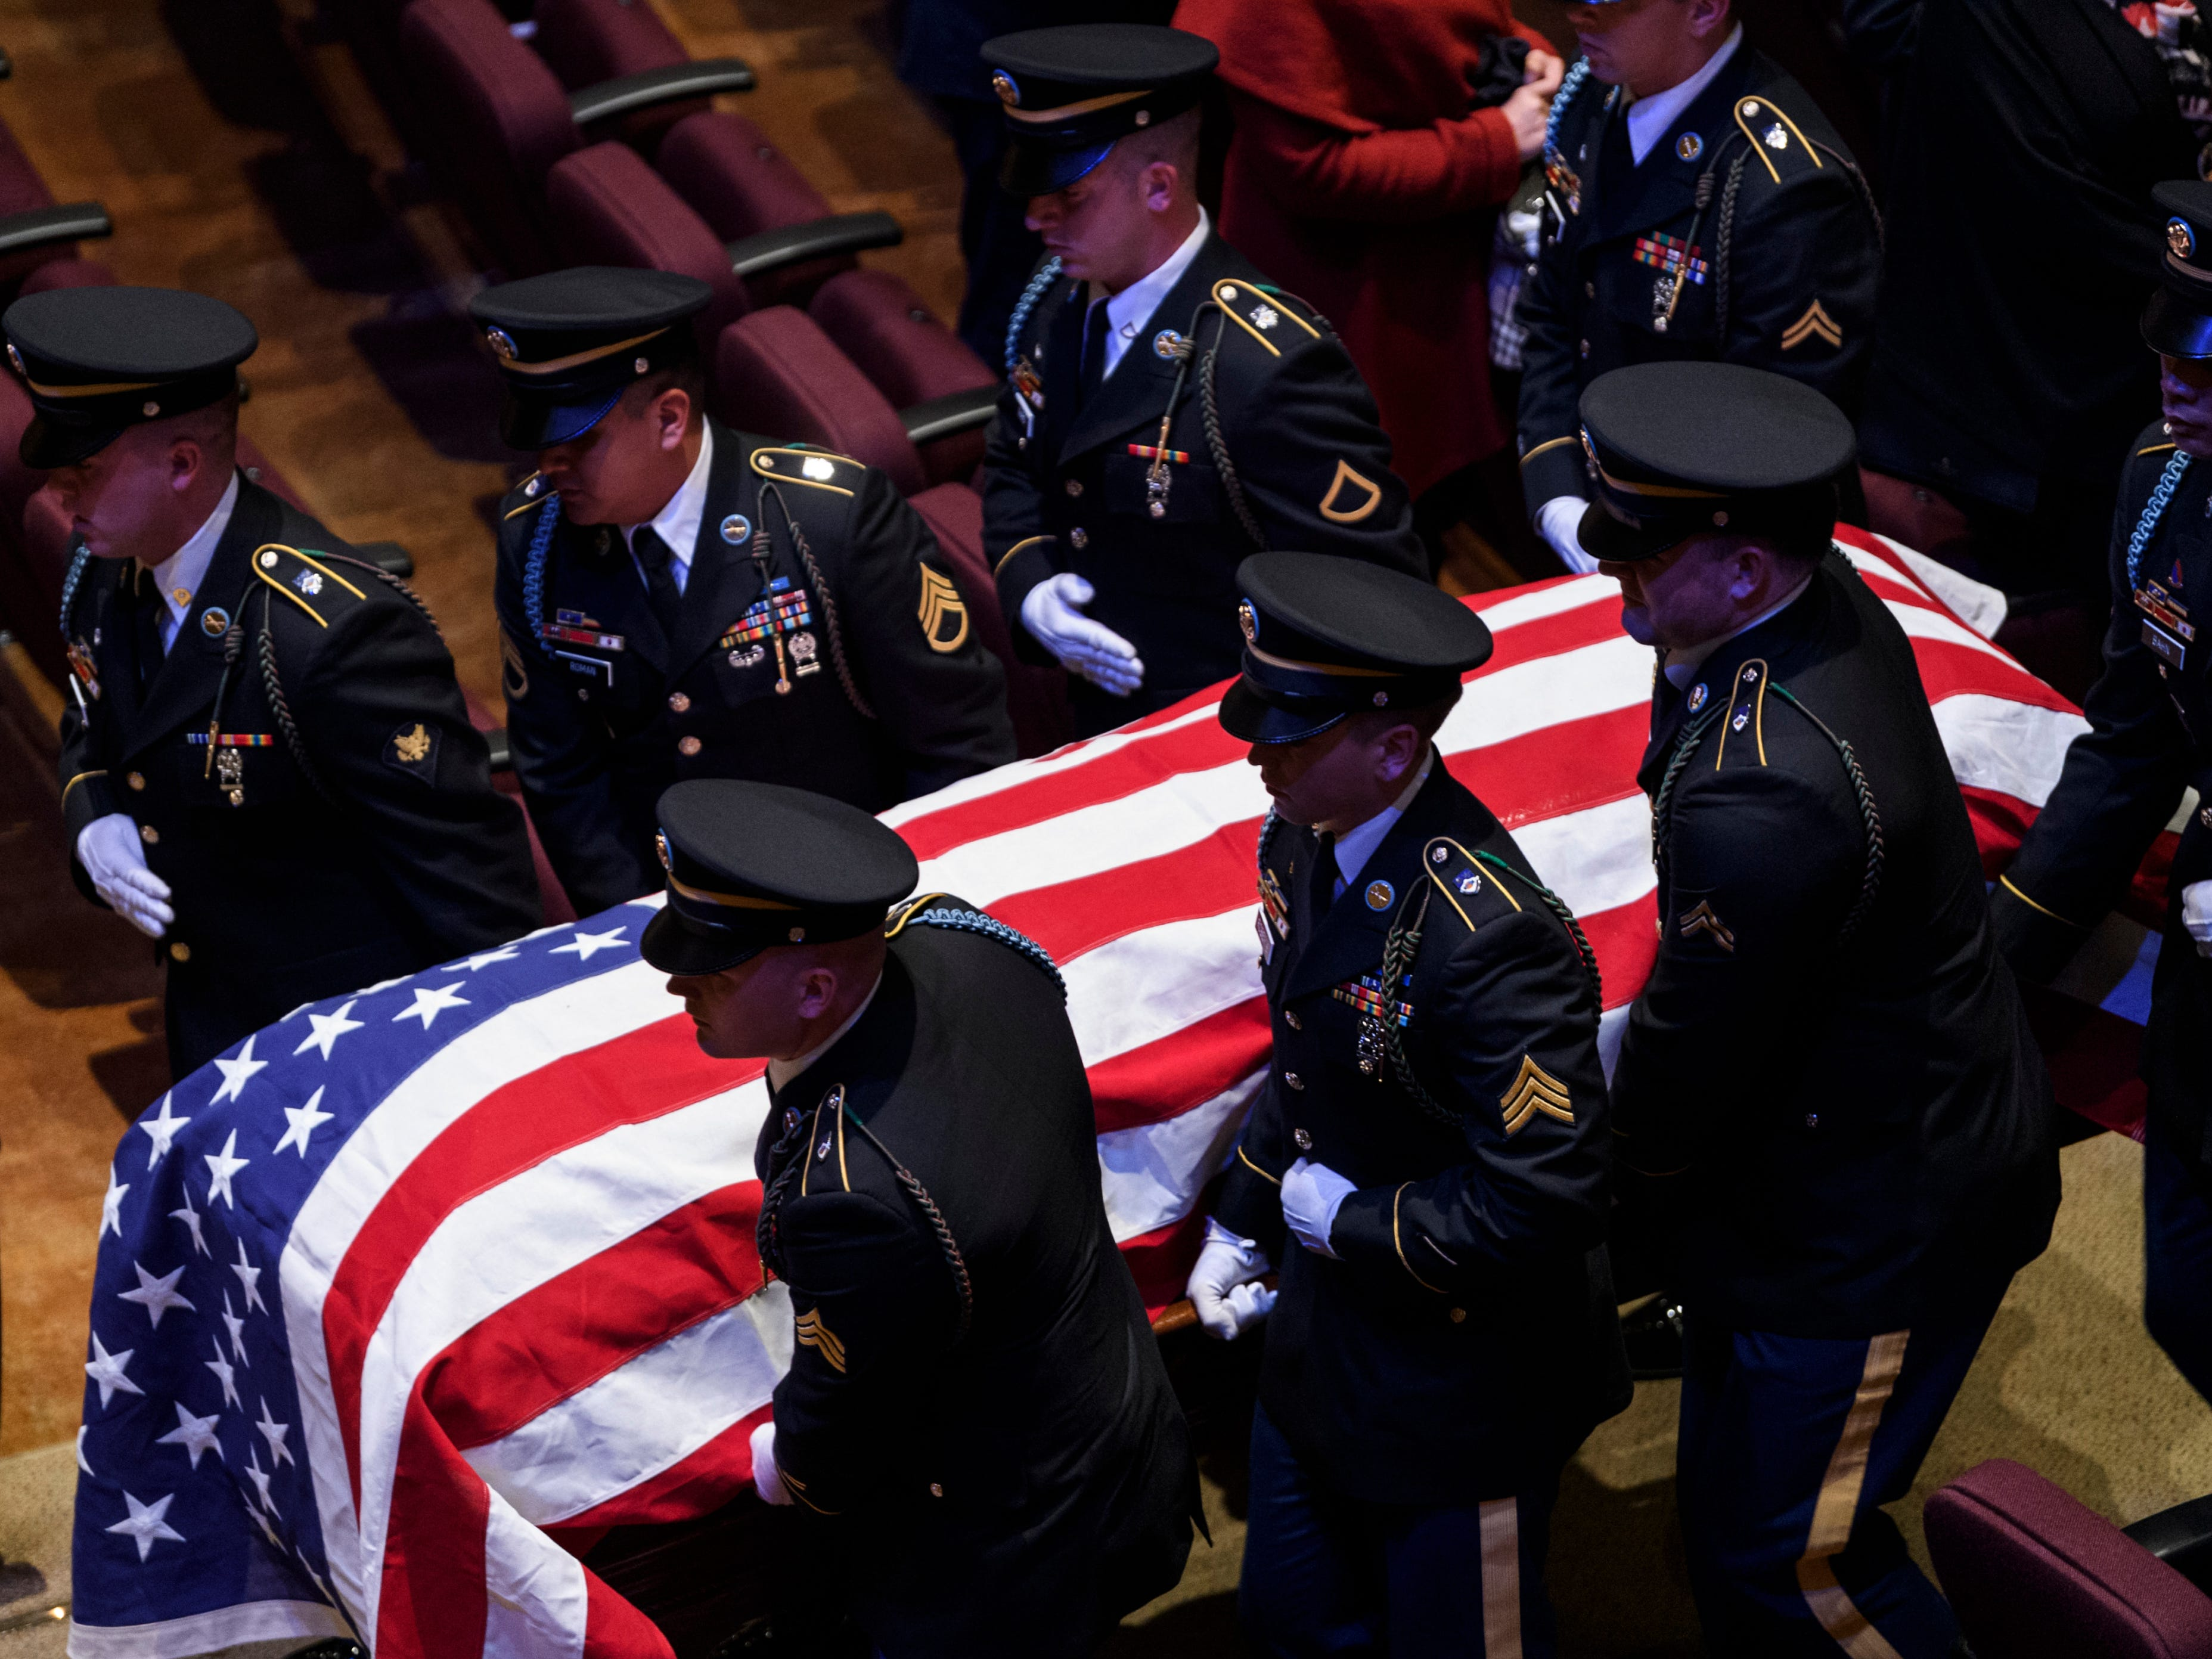 """Soldiers from Joint Base Lewis-McChord in Tacoma, Wash., carry Sgt. Drew Watters' casket out of the Christian Fellowship Church chapel at the end of a """"Celebration of Life"""" ceremony to honor their friend and fellow soldier in Evansville, Ind., Wednesday, Nov. 14, 2018."""